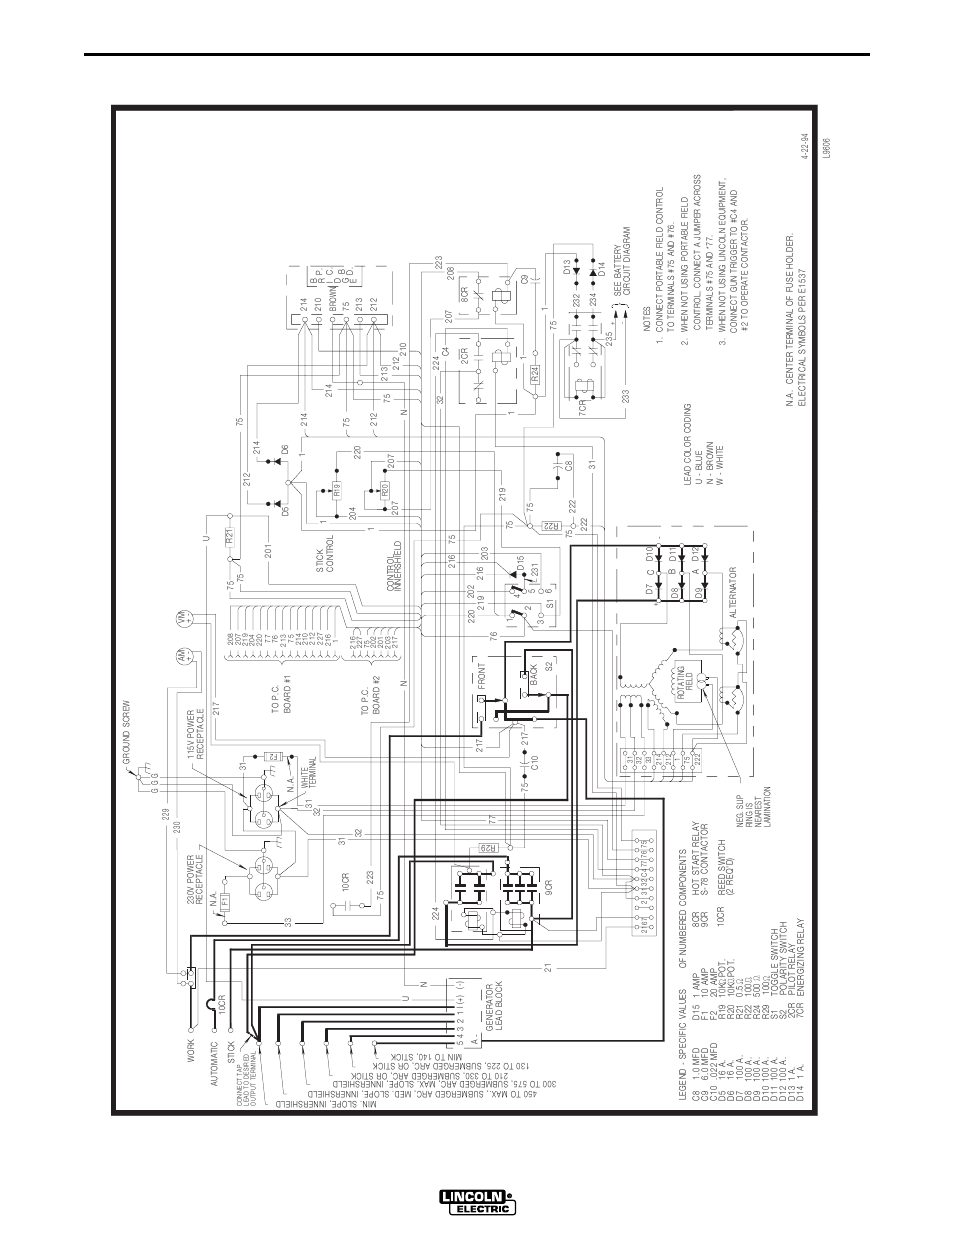 Lincoln G8000 Wiring Diagram List Of Schematic Circuit Weldanpower 150 Electric Diagrams Simple Rh David Huggett Co Uk